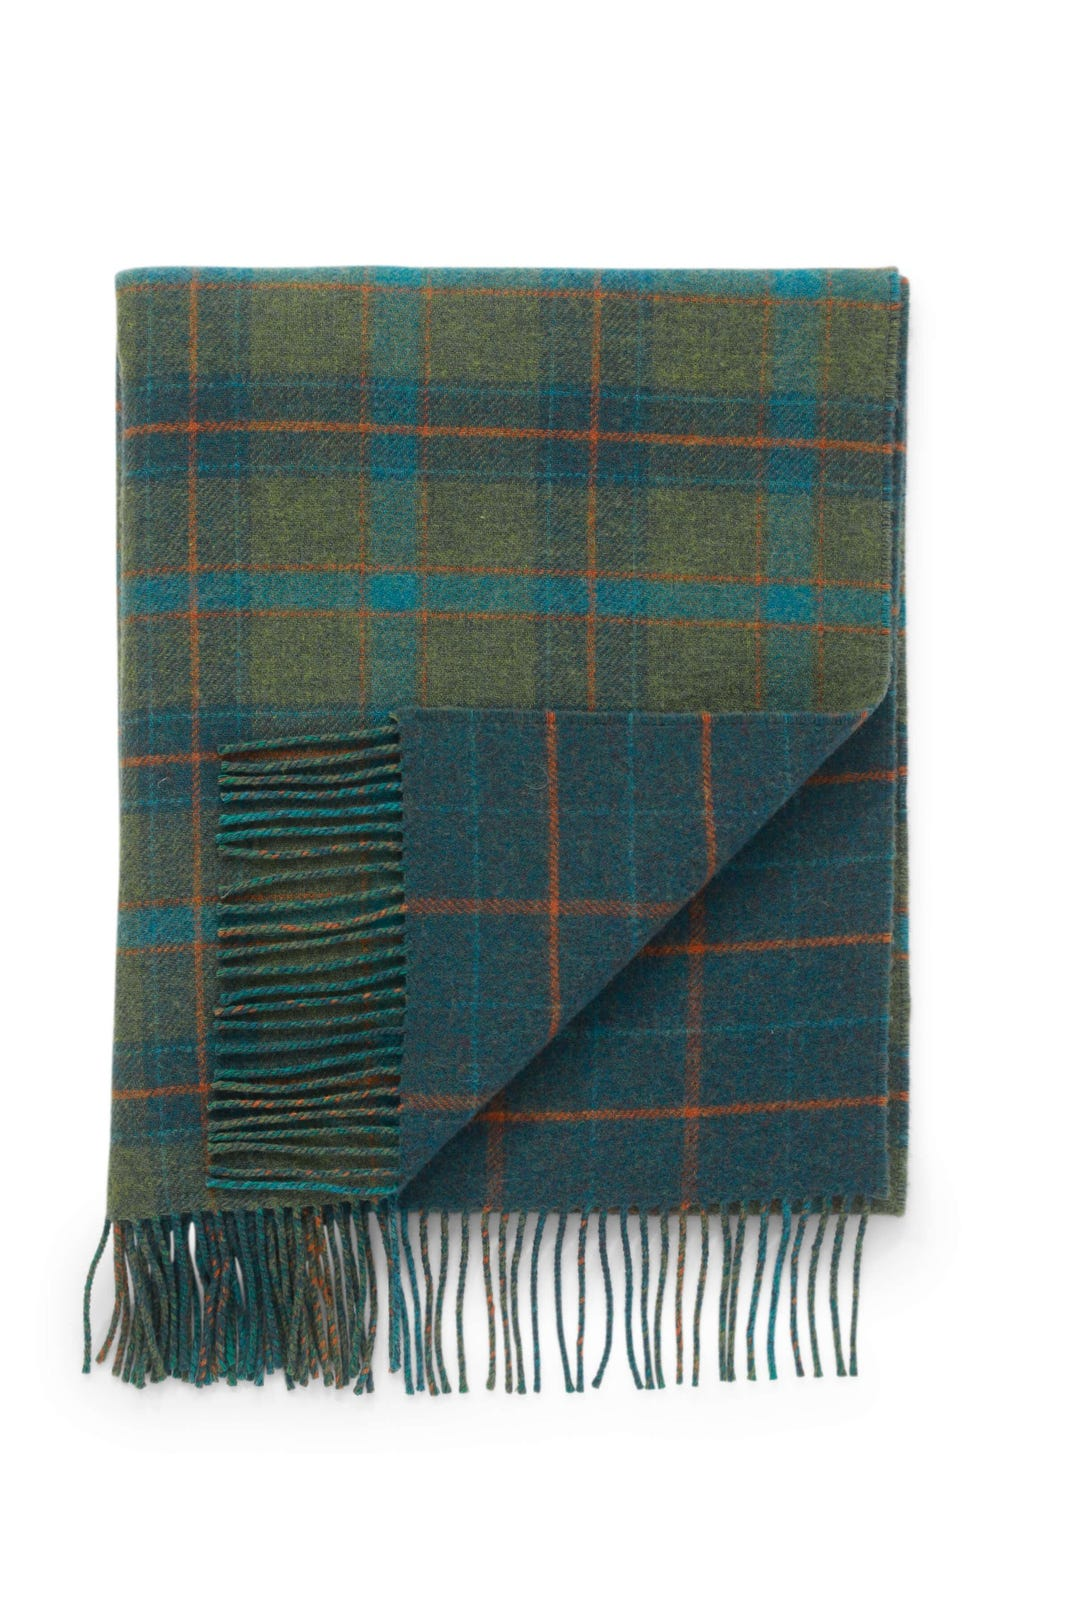 JOHNSTONS OF ELGIN BRIGHT CHECK / DARK CHECK LAMBSWOOL WOVEN THROW